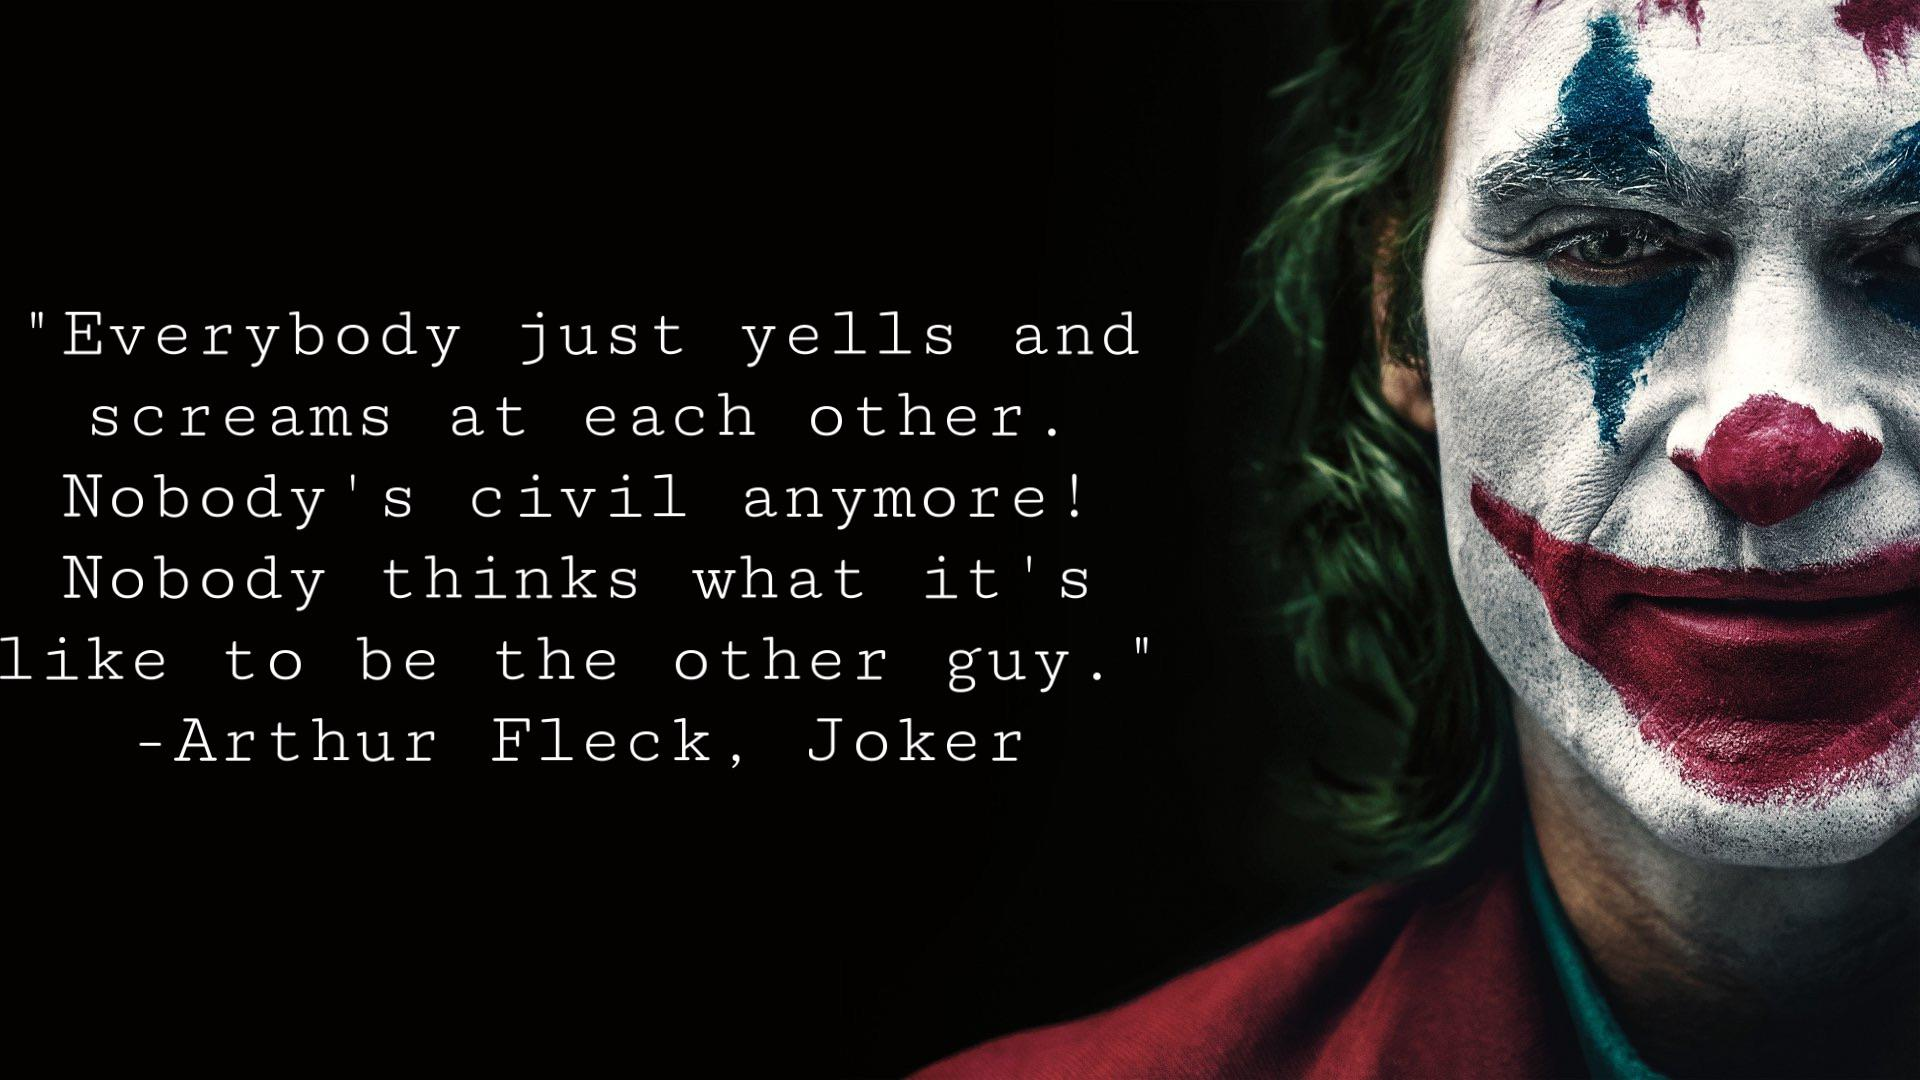 """Everybody just yells and screams at each other. Nobody's civil anymore. Nobody thinks what it's like to be the other guy."" -Arthur Fleck, Joker [1920 * 1080]"